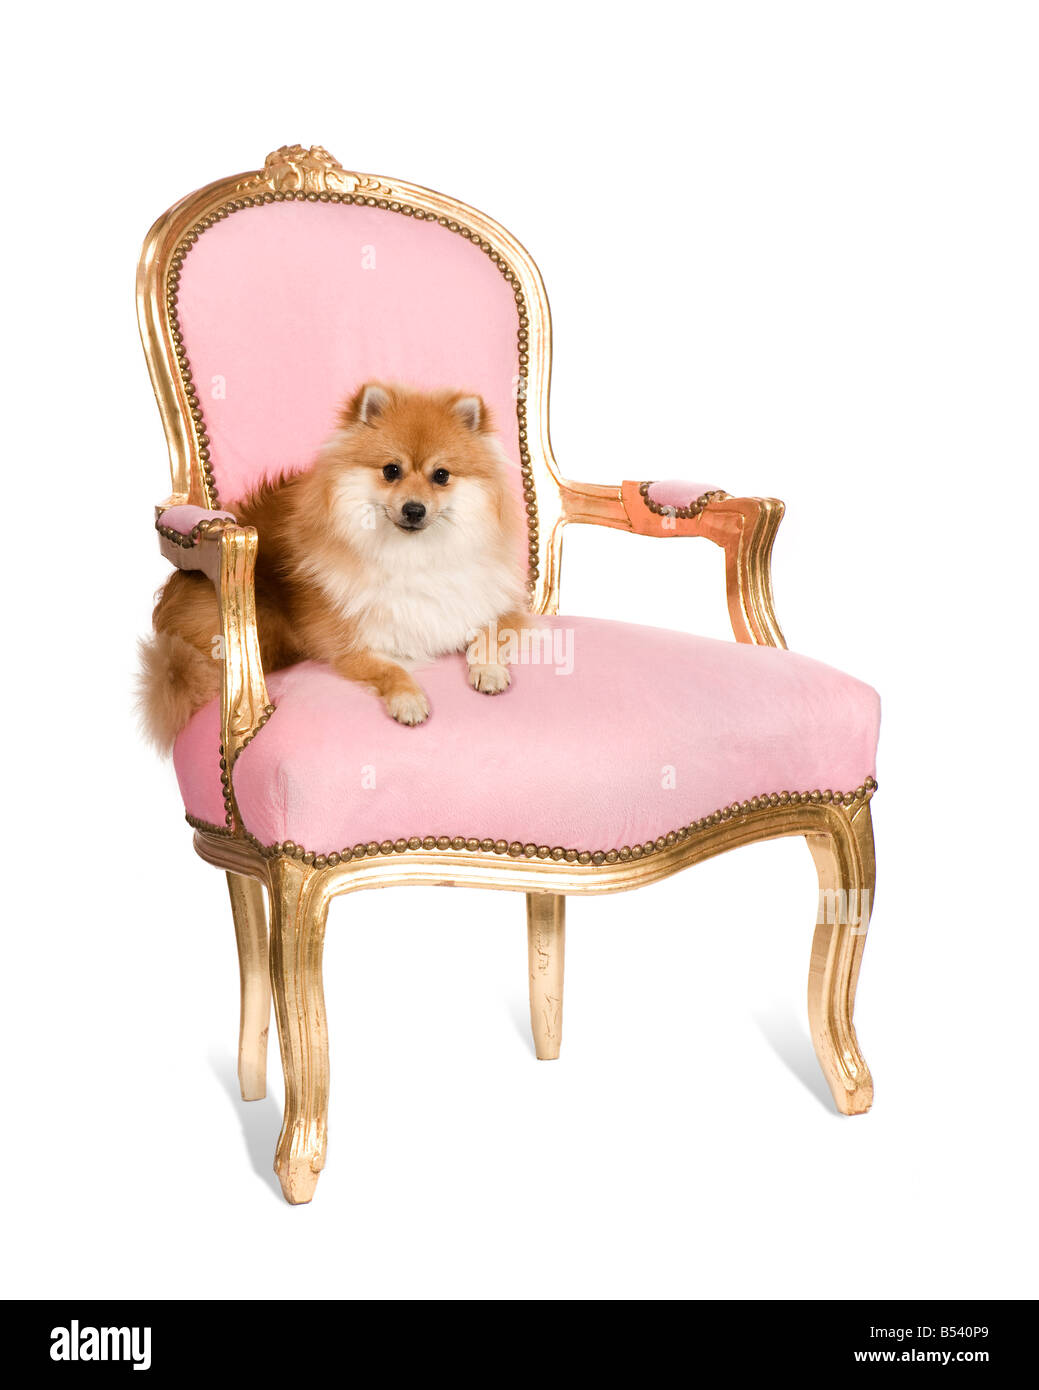 Pomeranian 10 months in front of white background - Stock Image